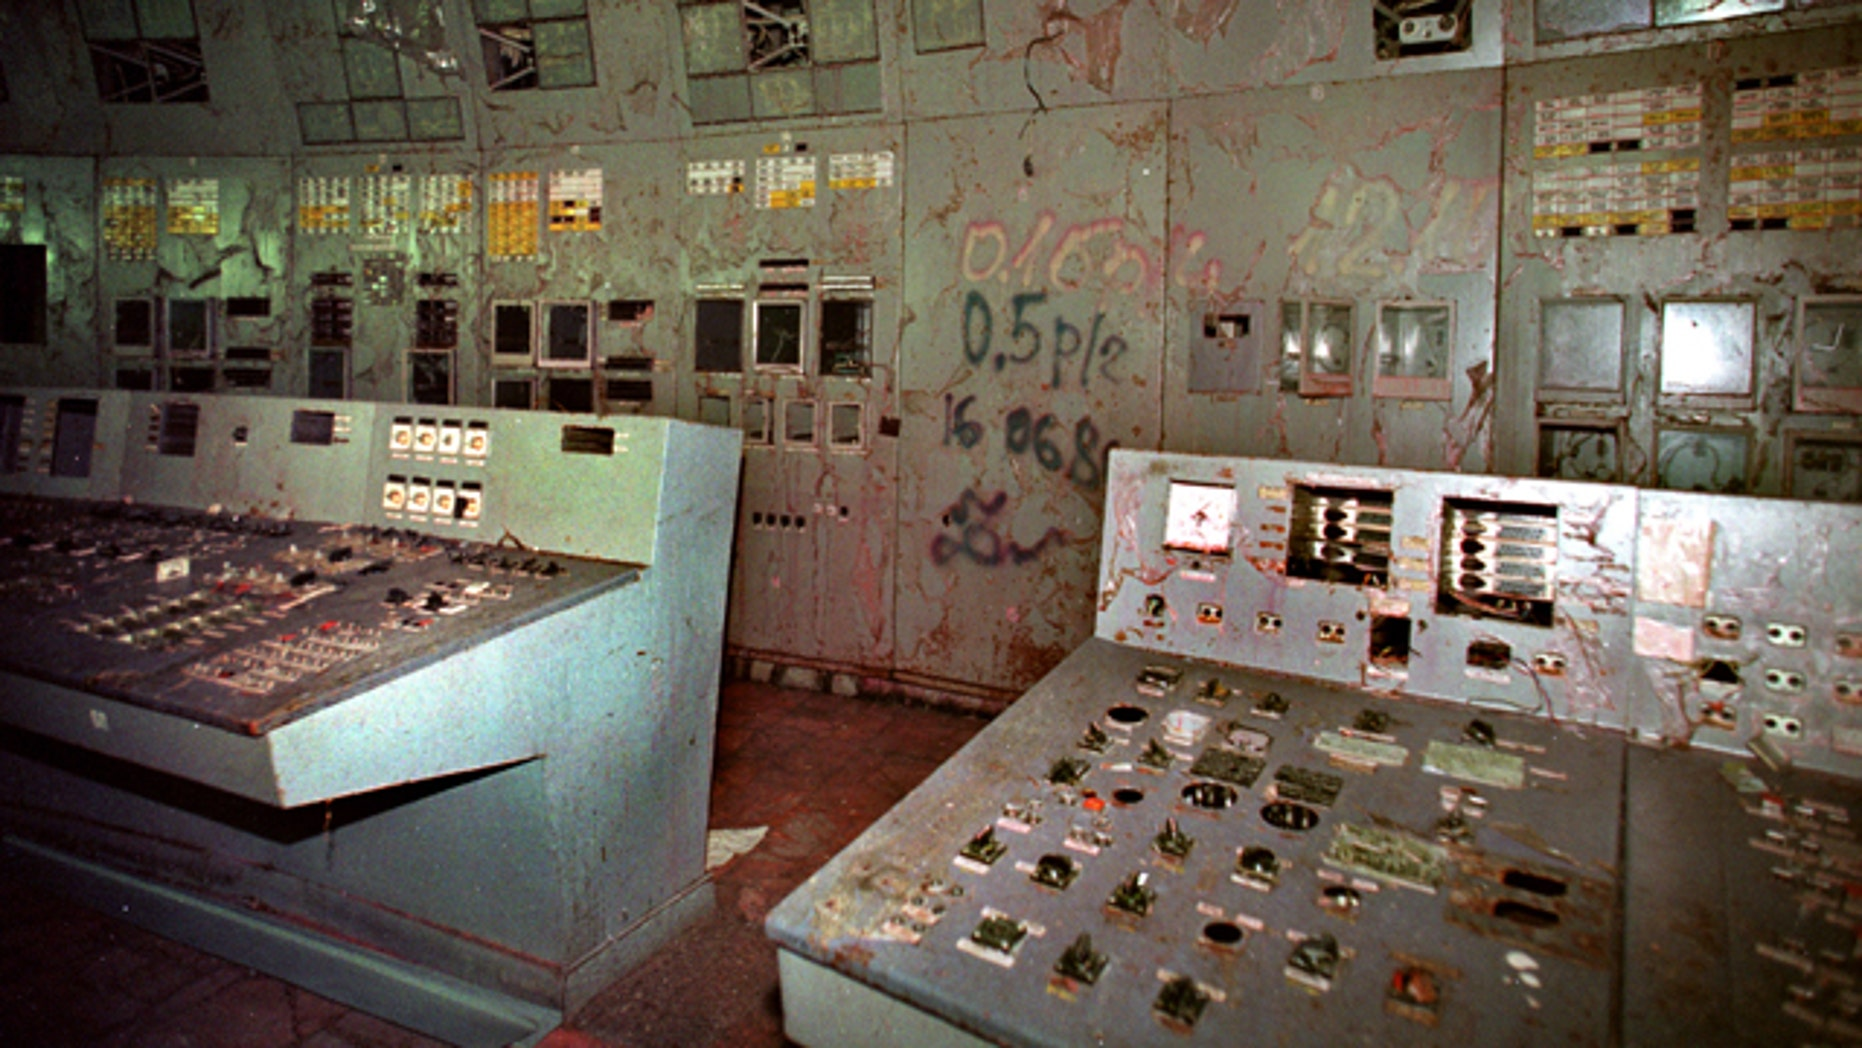 In this Nov. 10, 2000 file photo, the control room, with its damaged machinery, is seen inside reactor No. 4 in the Chernobyl nuclear power plant. Geiger counters registered about 80,000 microroentgens an hour, 16,000 times the safe limit. Reactor No. 4 at the Chernobyl nuclear power plant in Ukraine, then part of the Soviet Union, exploded on April 26, 1986, sending a cloud of radiation over much of Europe. (AP)